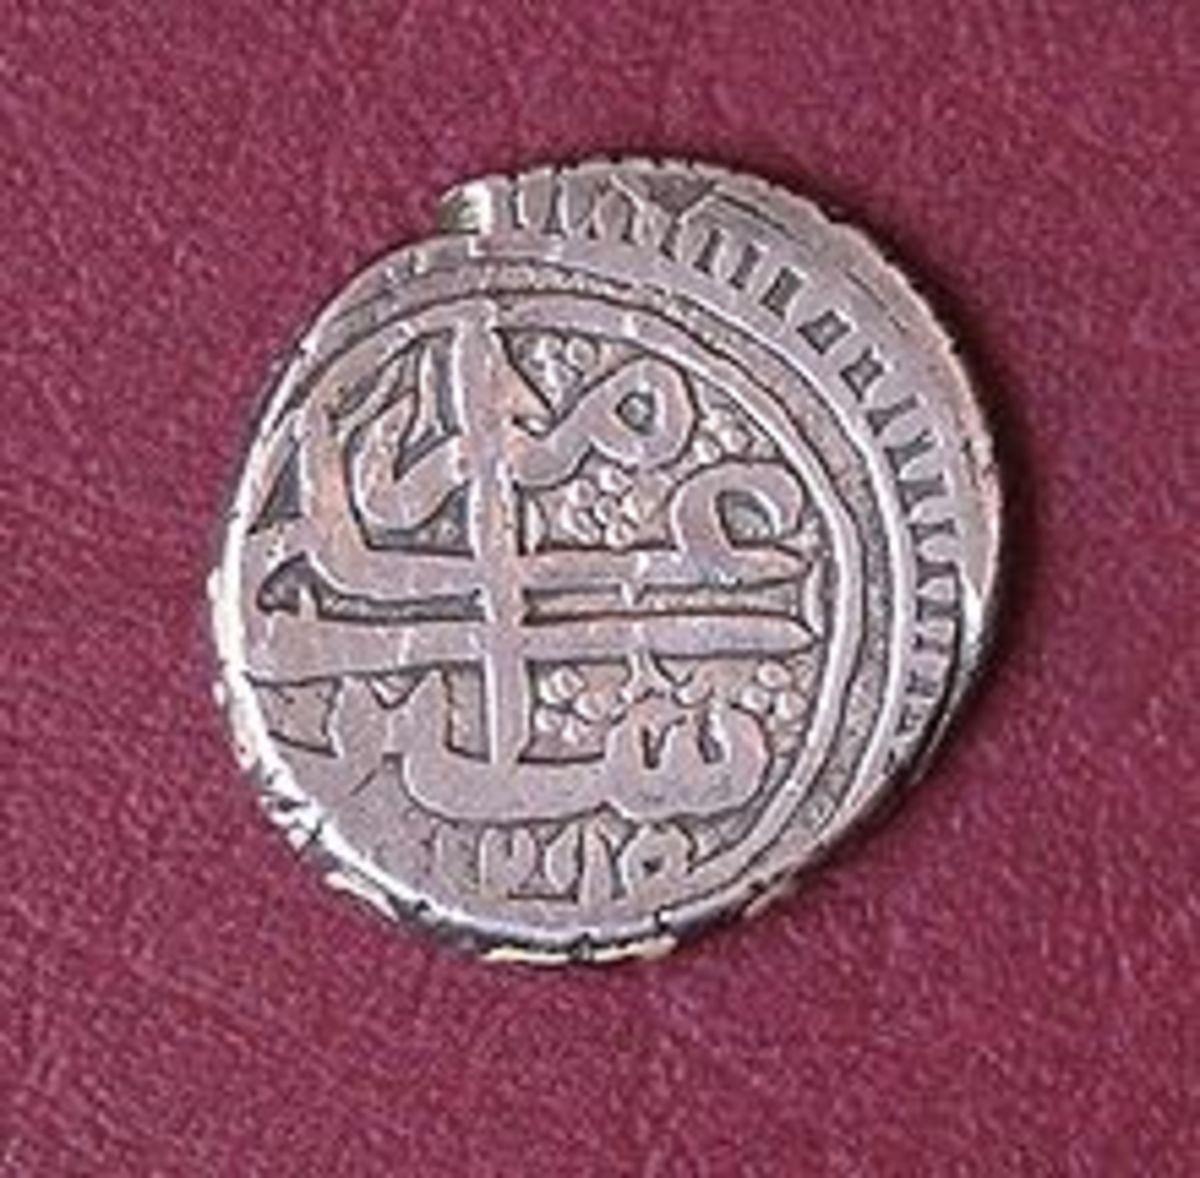 One Rupee coin (dated 1285 AH), 12 ounce silver, minted during the reign of Mir Ali Murad